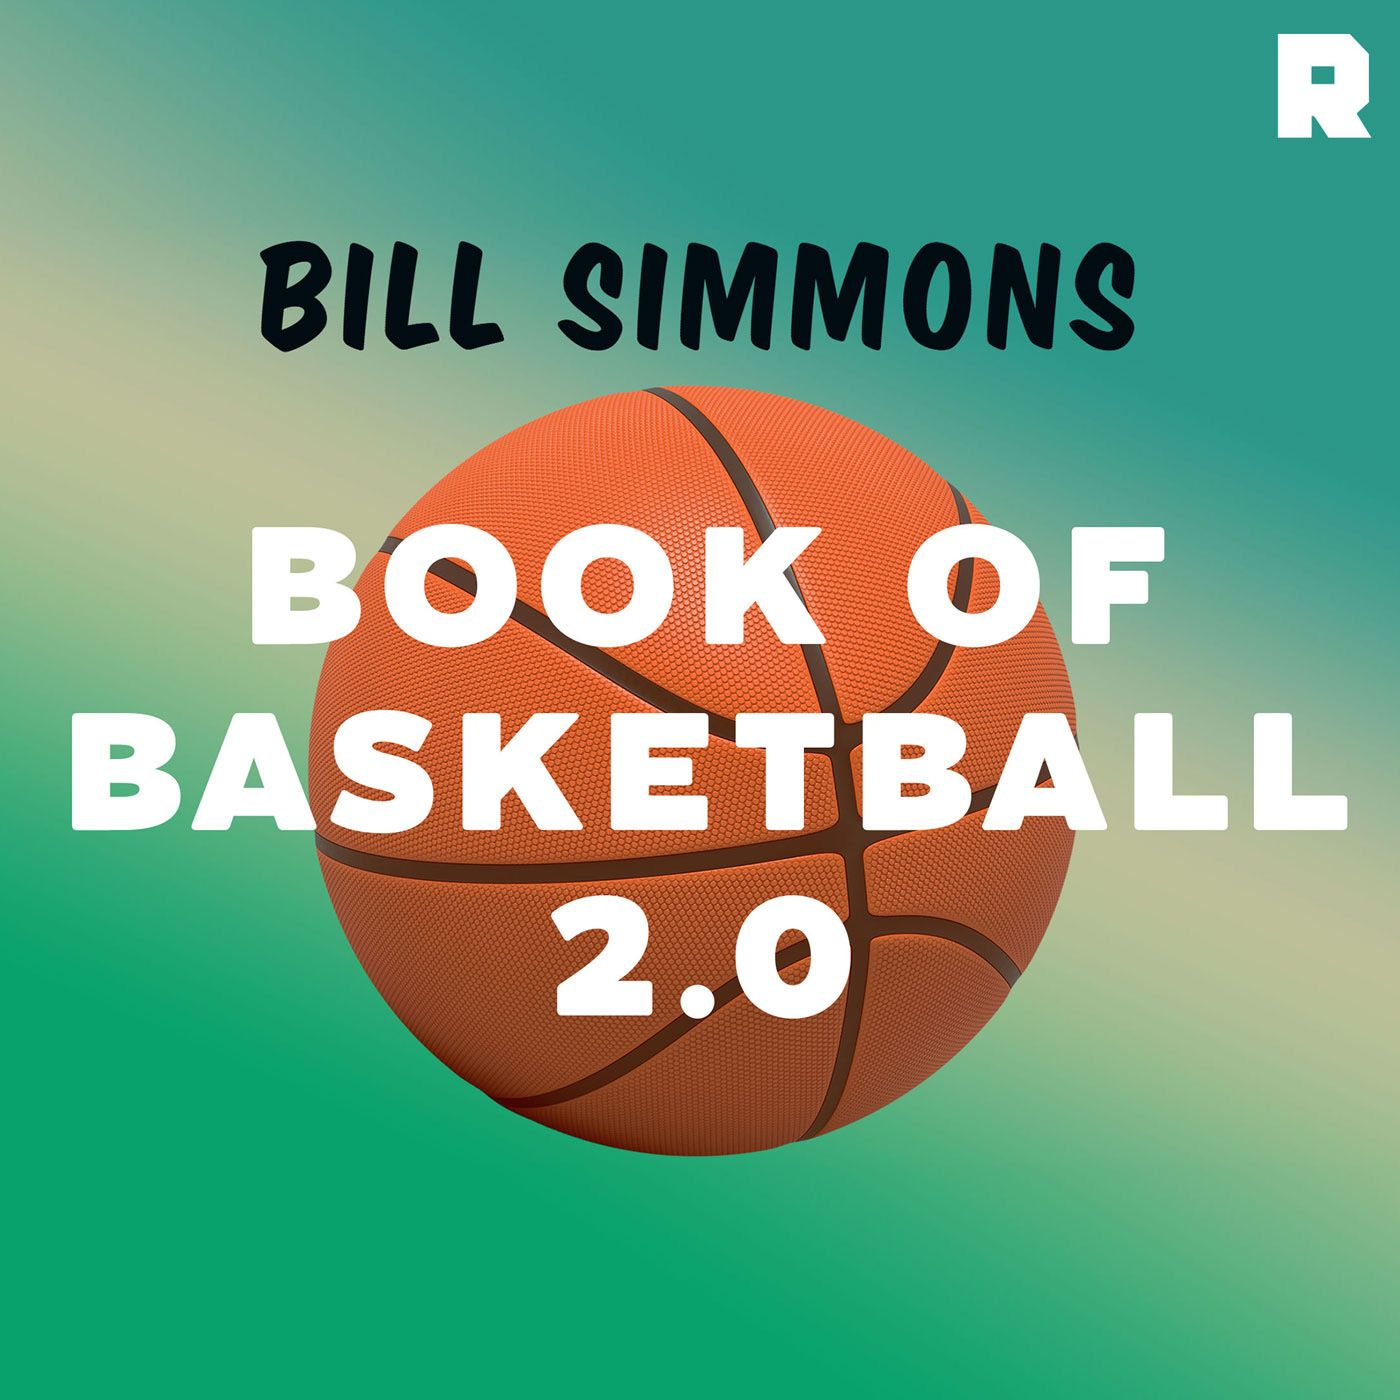 1999 Redraftables: Francis in Purgatory! Odom in Hell! Weis Over Artest! Remembering an Unusually Hilarious Draft With Chris Ryan and Joe House | Book of Basketball 2.0